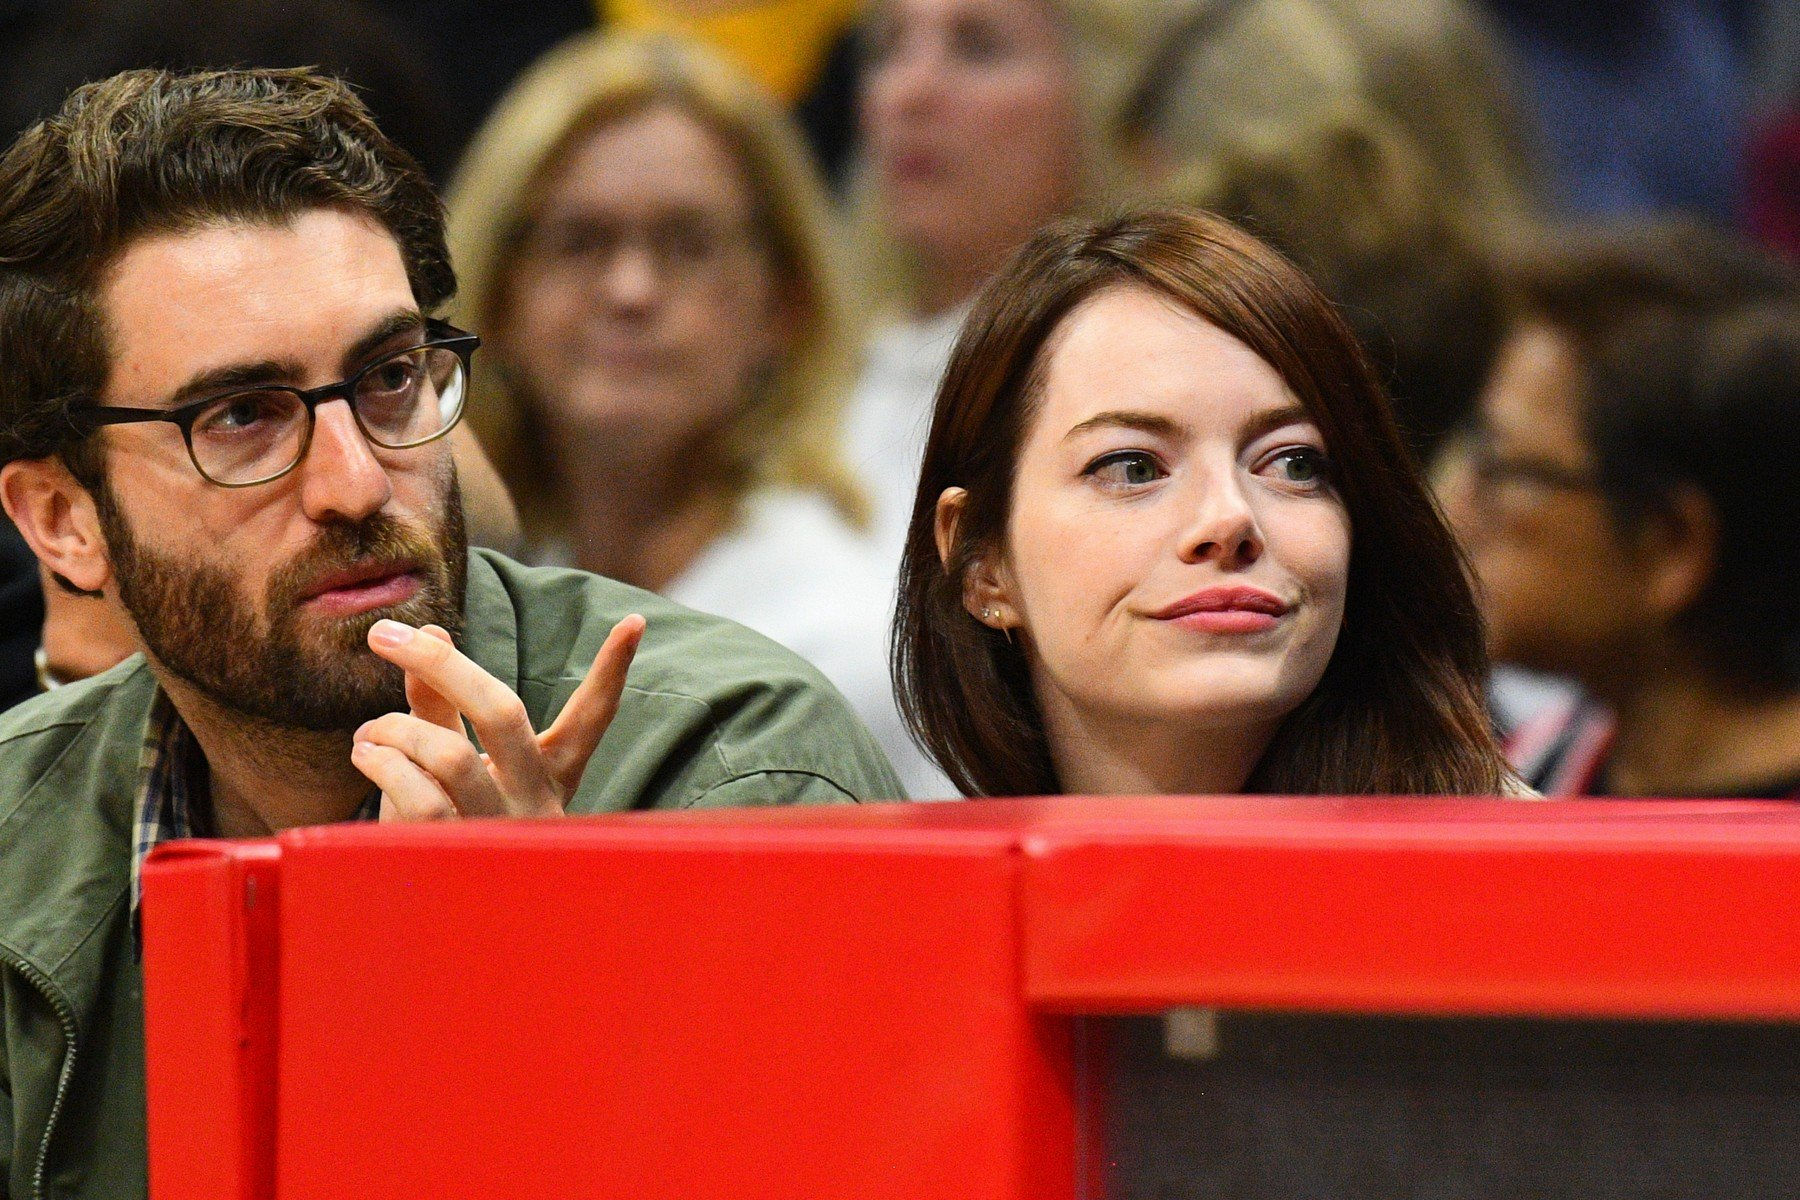 LOS ANGELES, CA - JANUARY 18: Actress Emma Stone and her boyfriend Dave McCary look on during a NBA game between the Golden State Warriors and the Los Angeles Clippers on January 18, 2019 at STAPLES Center in Los Angeles, CA., Image: 408646837, License: Rights-managed, Restrictions: FOR EDITORIAL USE ONLY. Icon Sportswire (A Division of XML Team Solutions) reserves the right to pursue unauthorized users of this image. If you violate our intellectual property you may be liable for: actual damages, loss of income, and profits you derive from the use of this image, and, where appropriate, the costs of collection and/or statutory damages up to 0,000 (USD)., Model Release: no, Credit line: Profimedia, Newscom